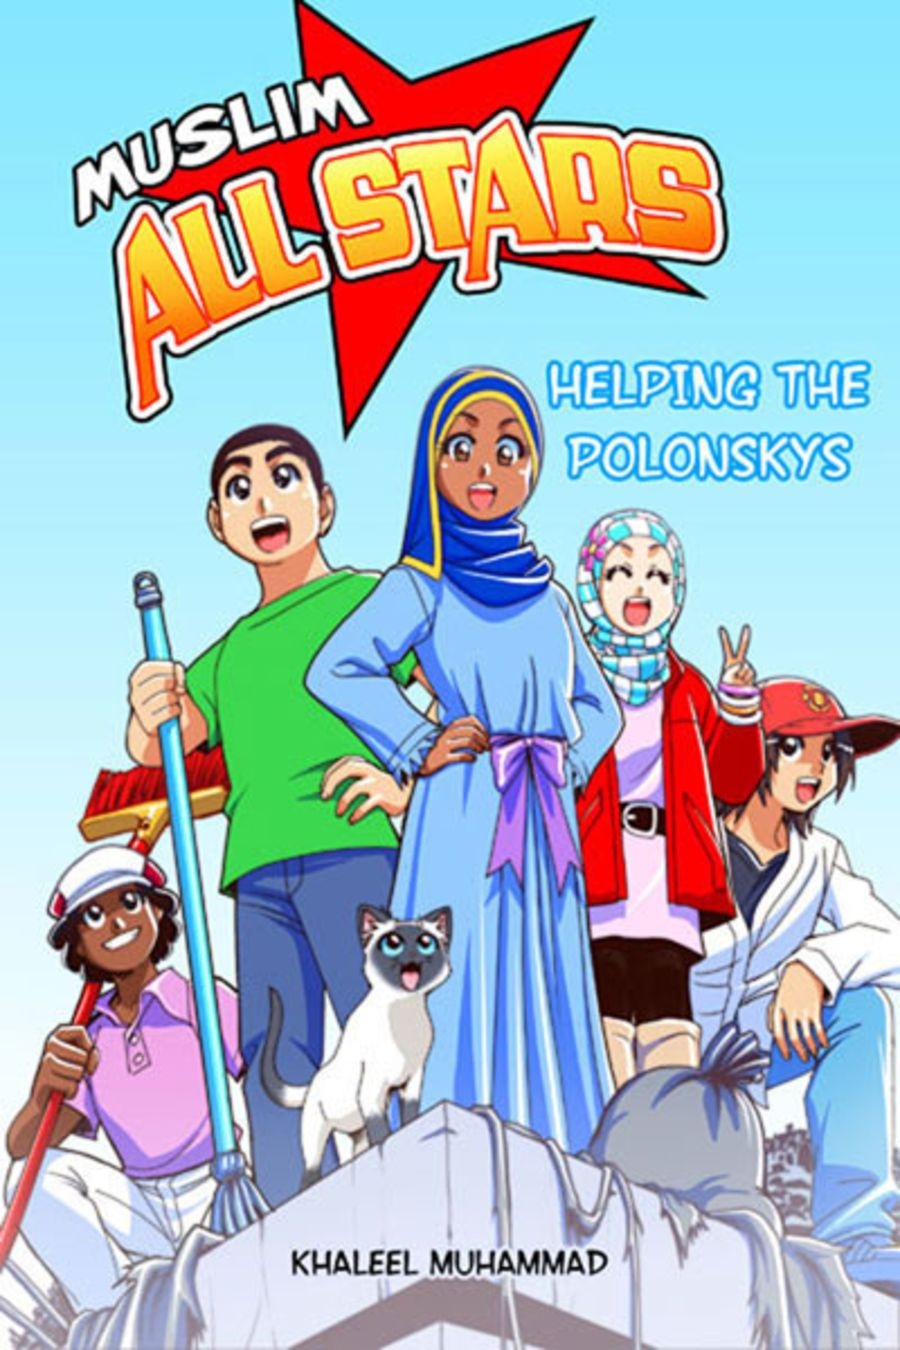 The Muslim All-Stars: Helping The Polonskys